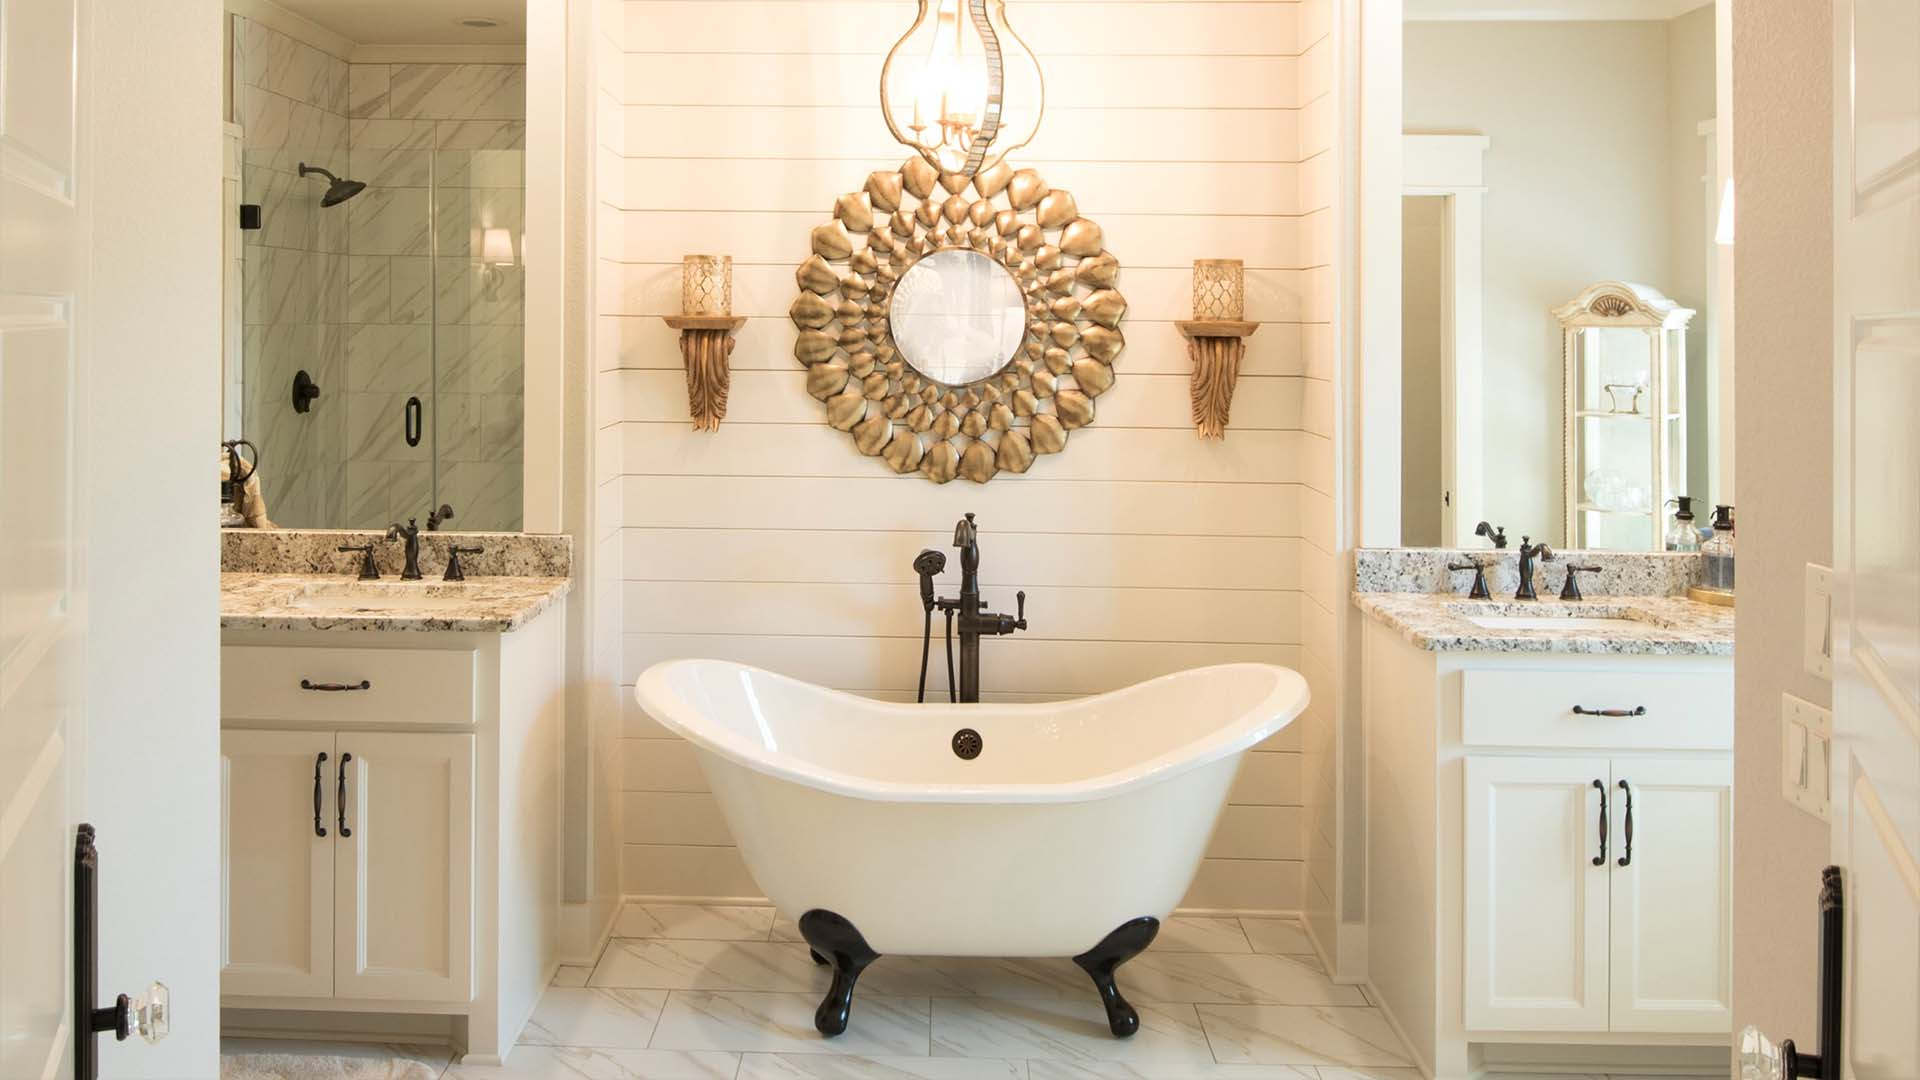 A beautiful bathroom with white and gold accents